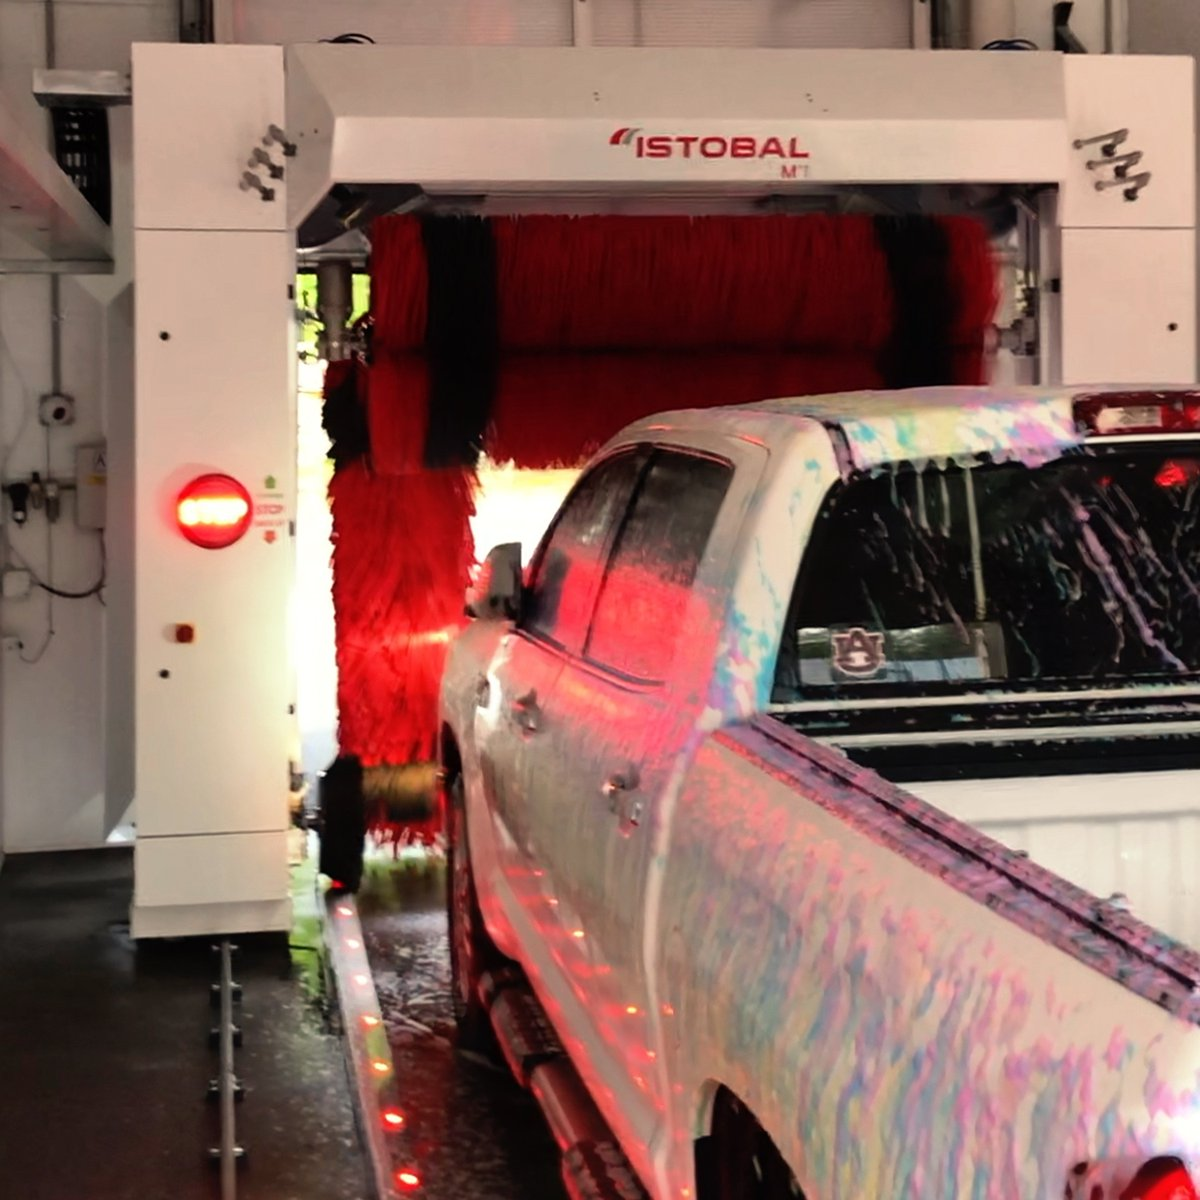 Our automated bay will give you a clean vehicle without any effort!   http://warriorwashwise.com    #CarWash #CleanCar #WiseVApic.twitter.com/VUDe3KCW2V